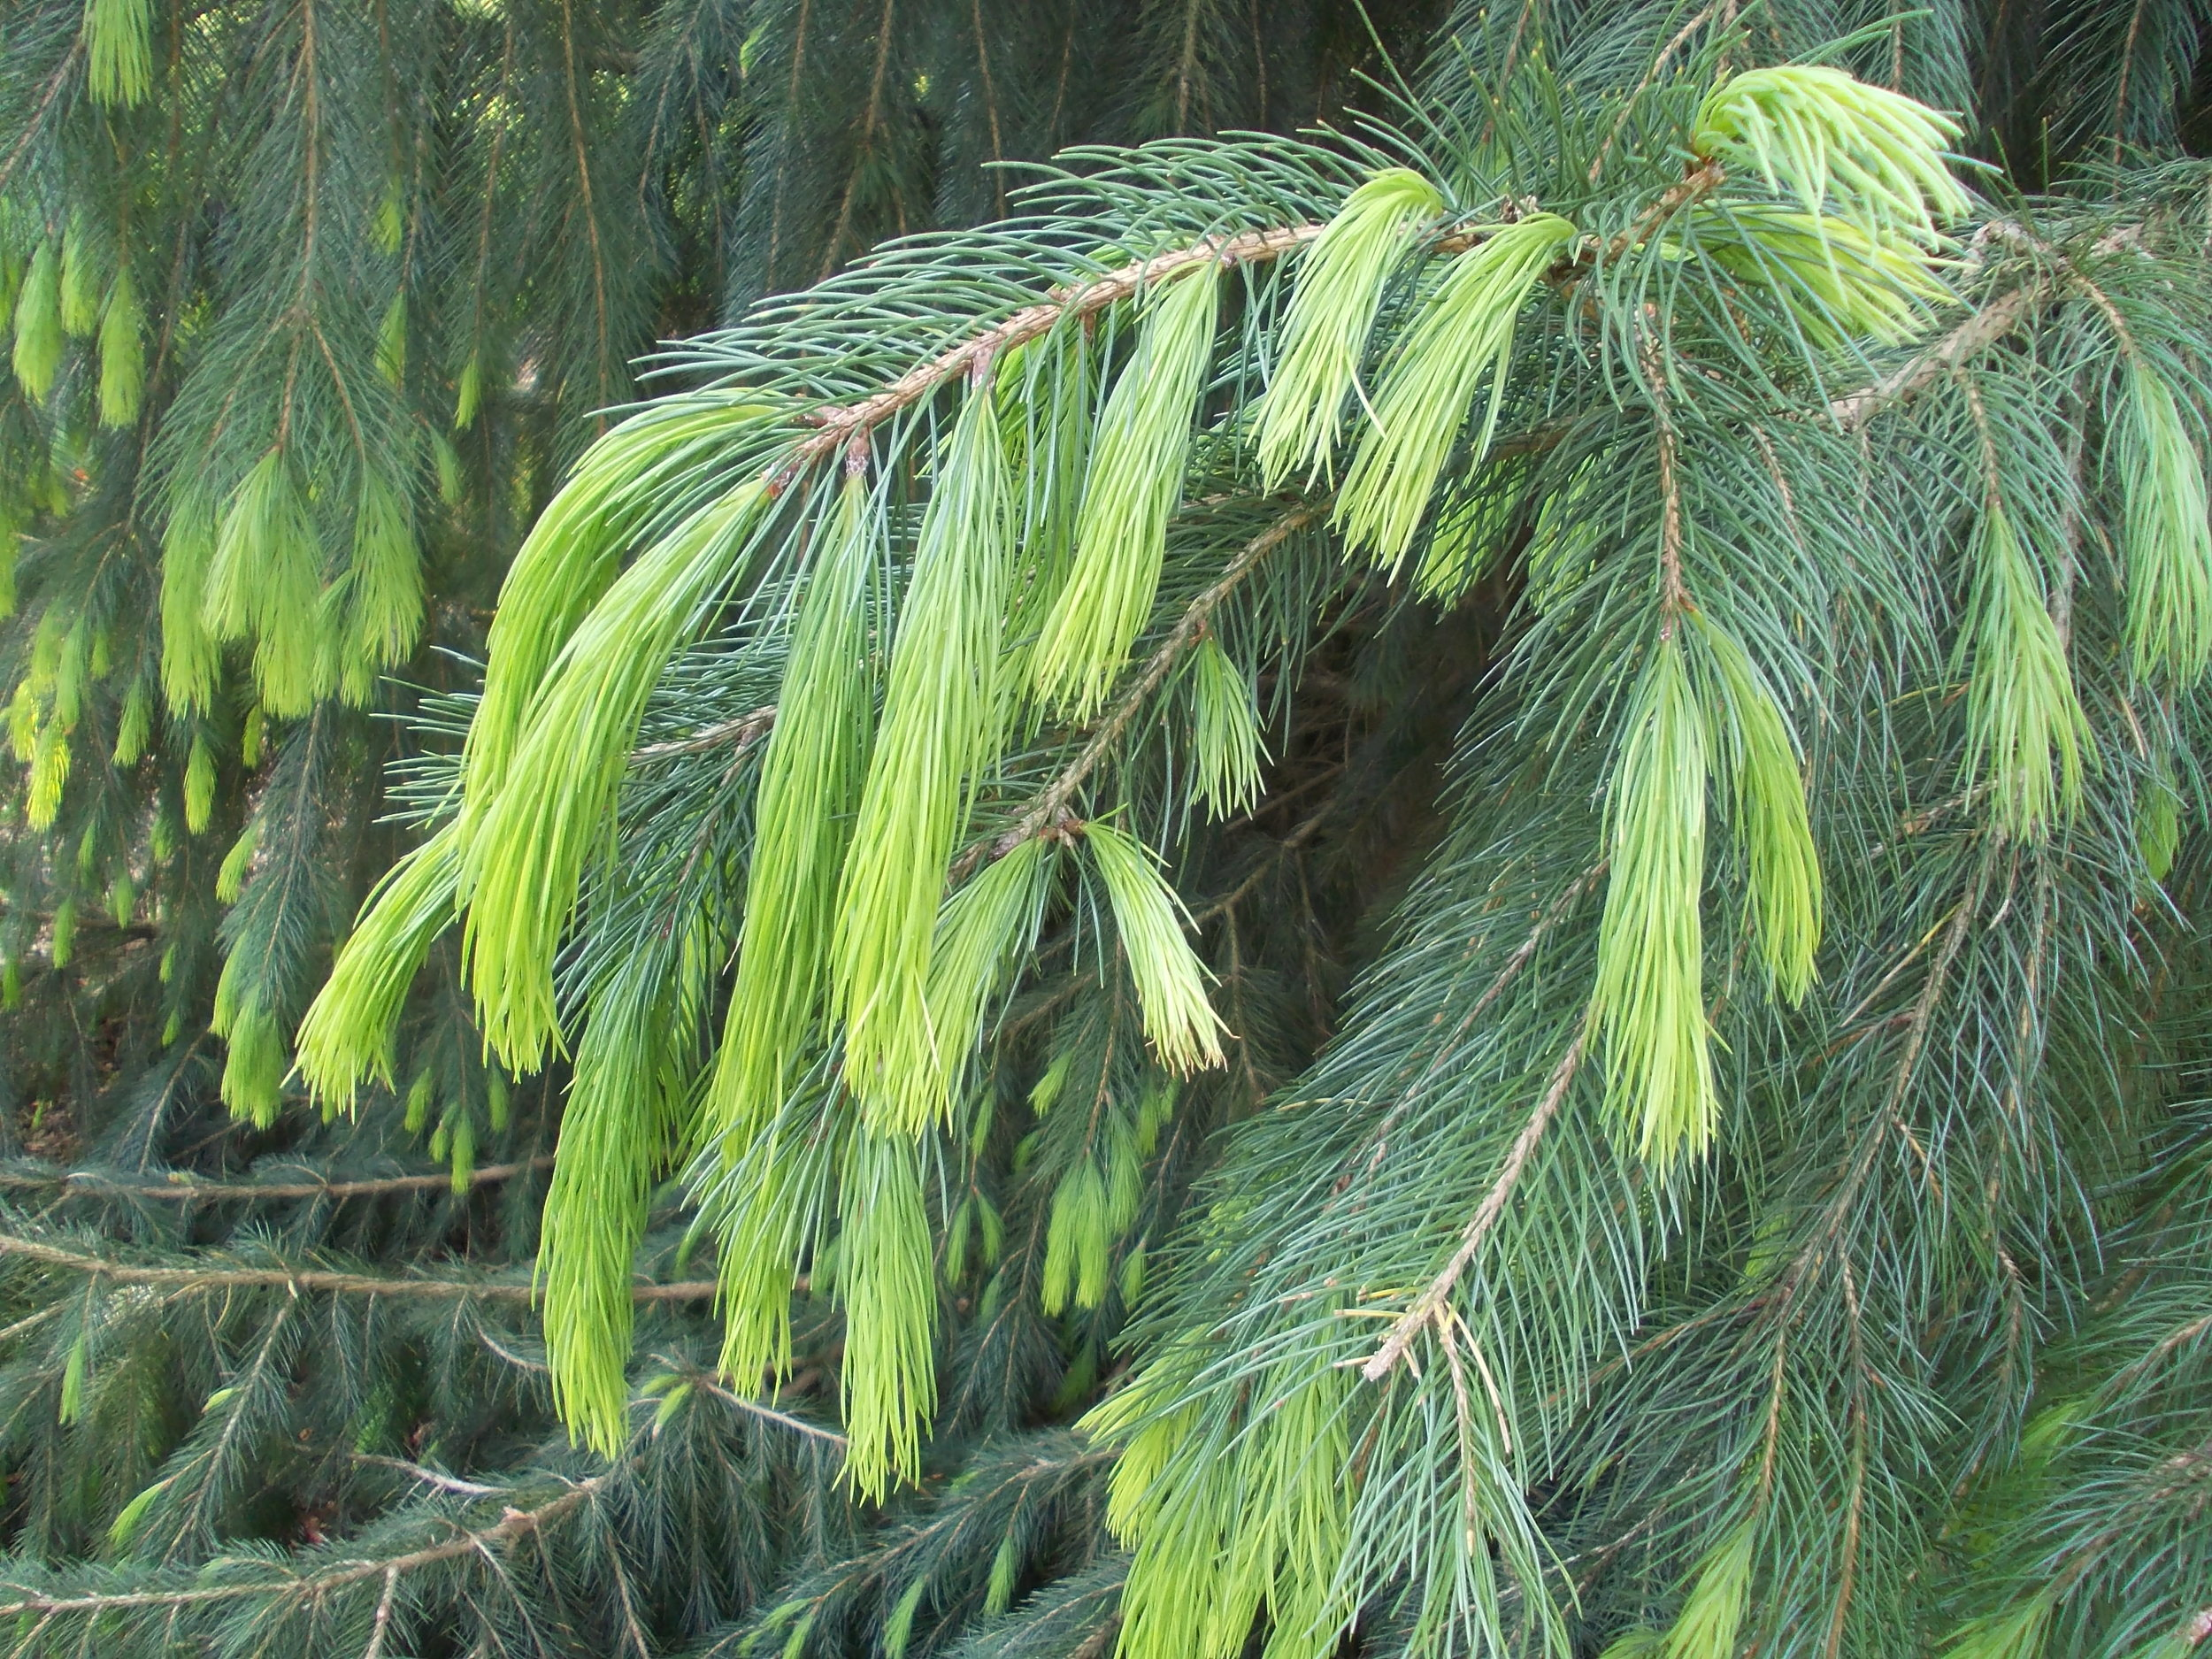 New_growth_of_Himalayan_or_Morinda_Spruce_Picea_smithiana.jpg